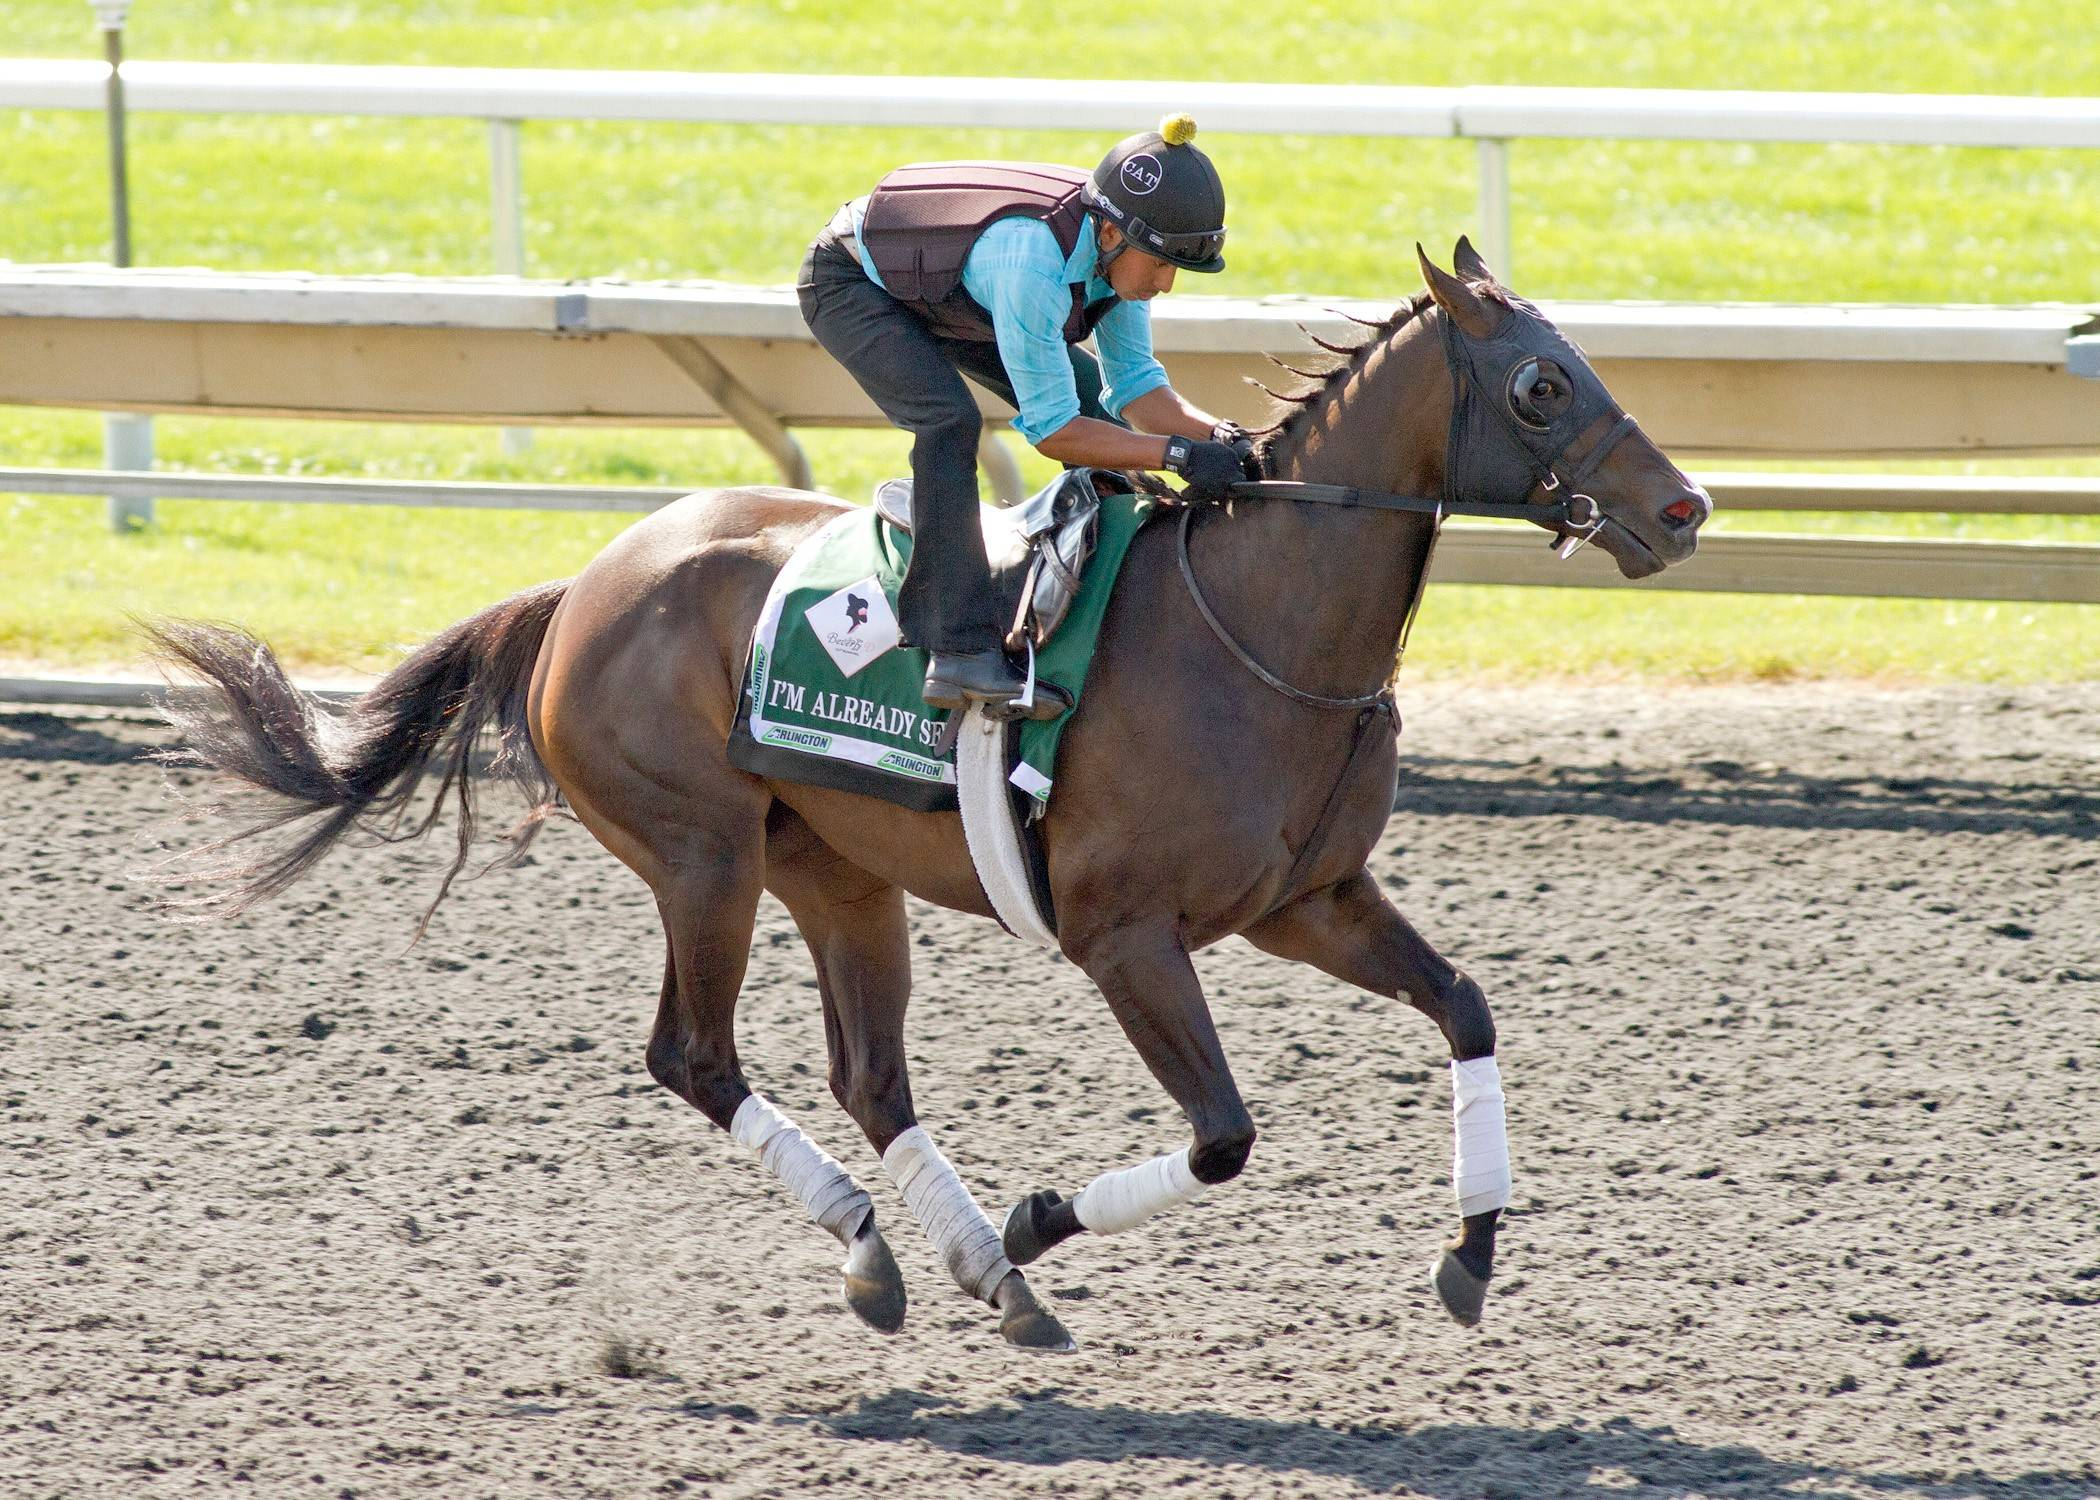 I'm Already Sexy, a 4-year-old filly who was a $20,000 purchase, is competing in the biggest race of her career today, the $750,000 Beverly D. at Arlington International Race Course.